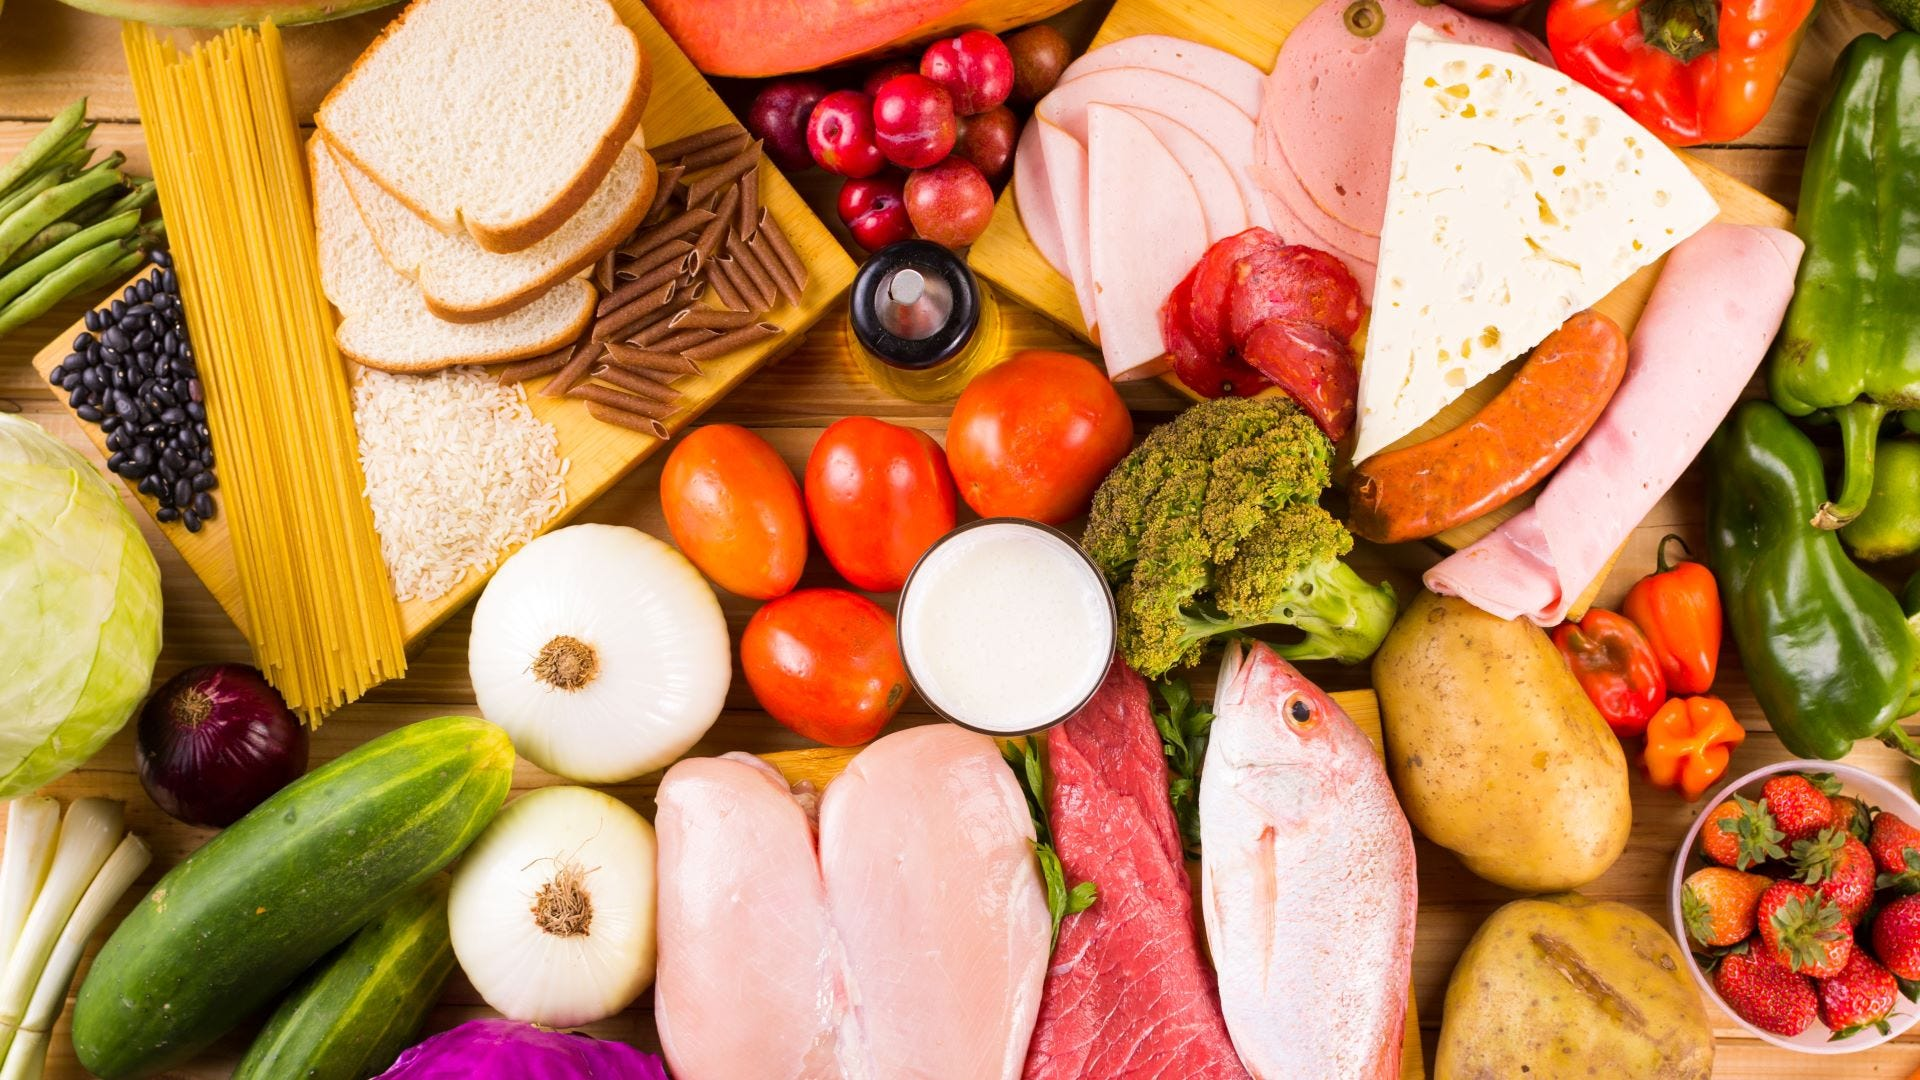 A pile of veggies, meats, breads, fruits, and berries on cutting boards.